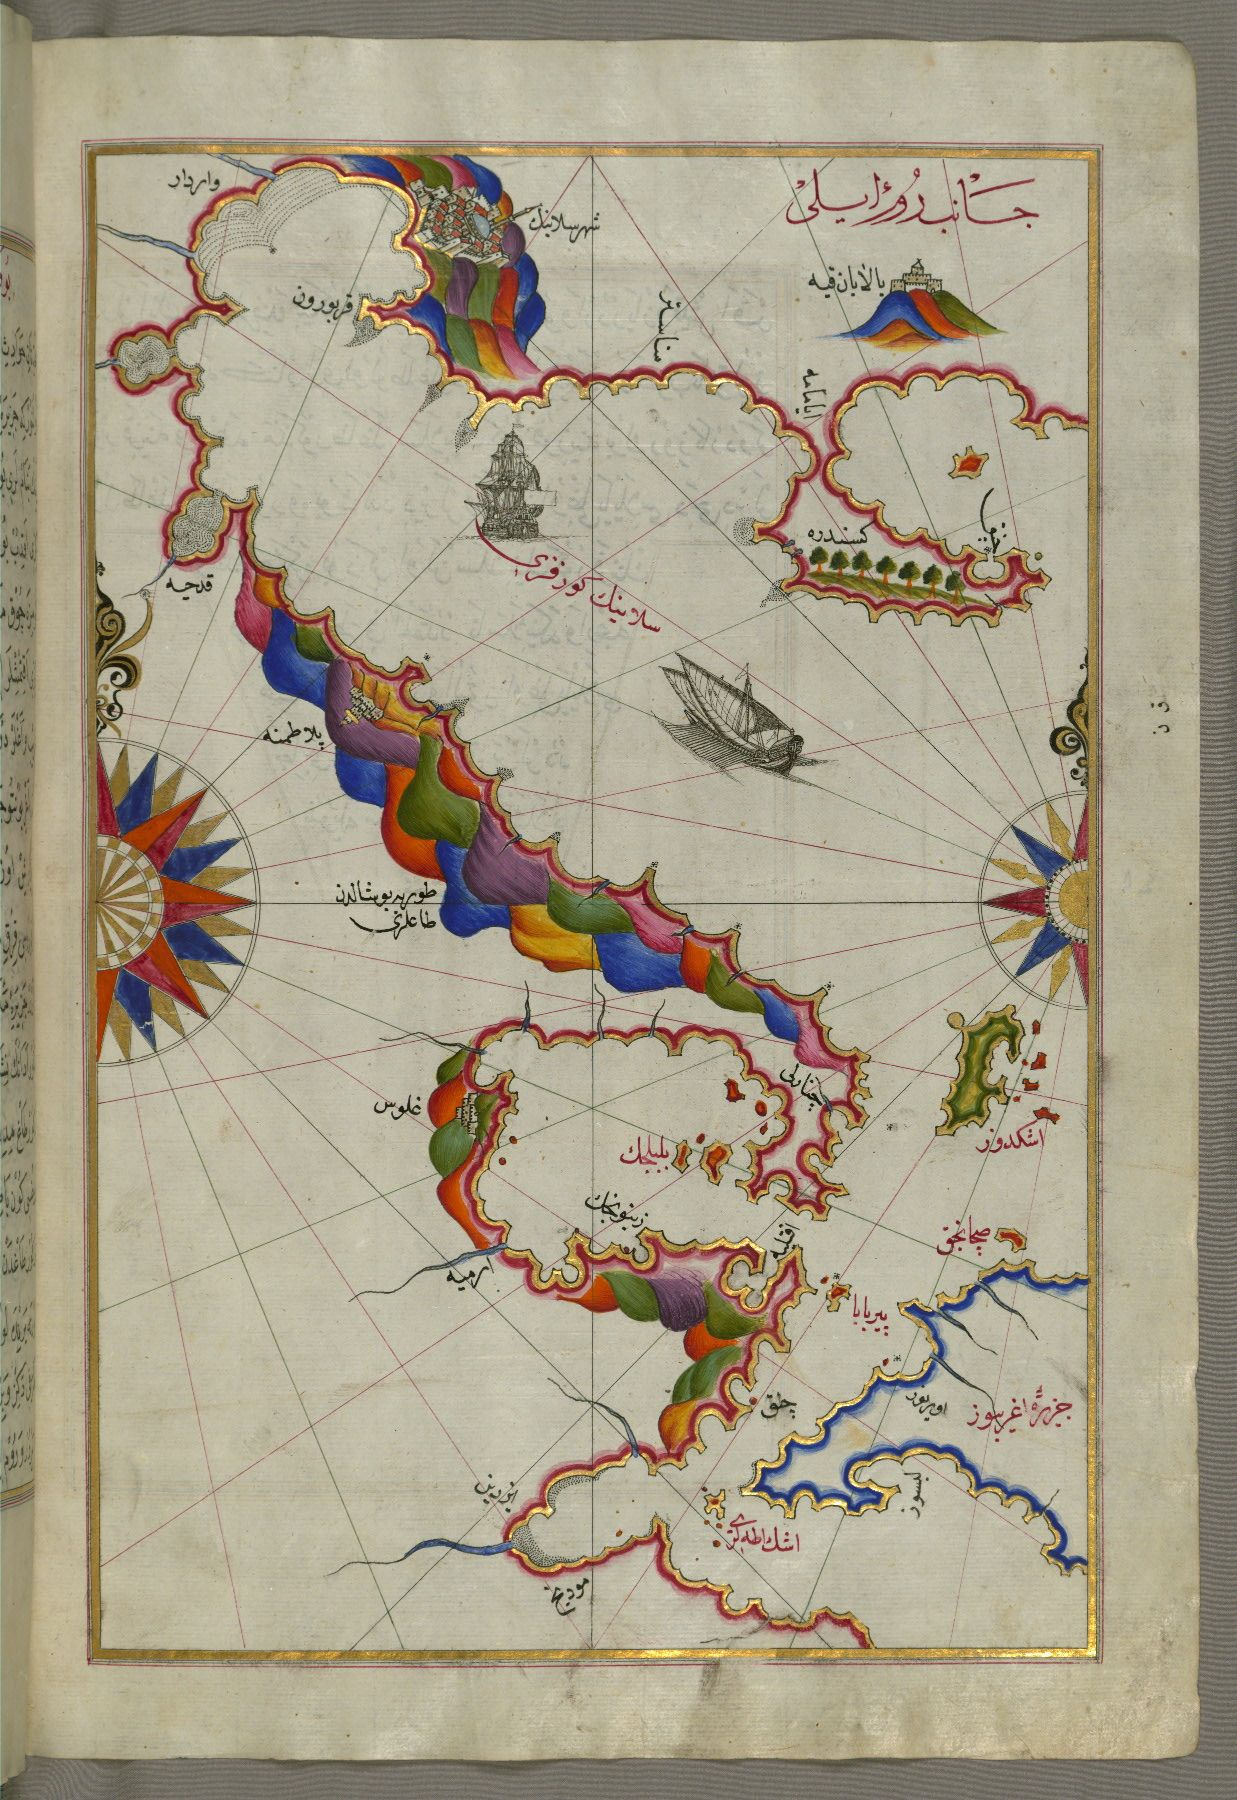 Illuminated Manuscript Map of the Bay of